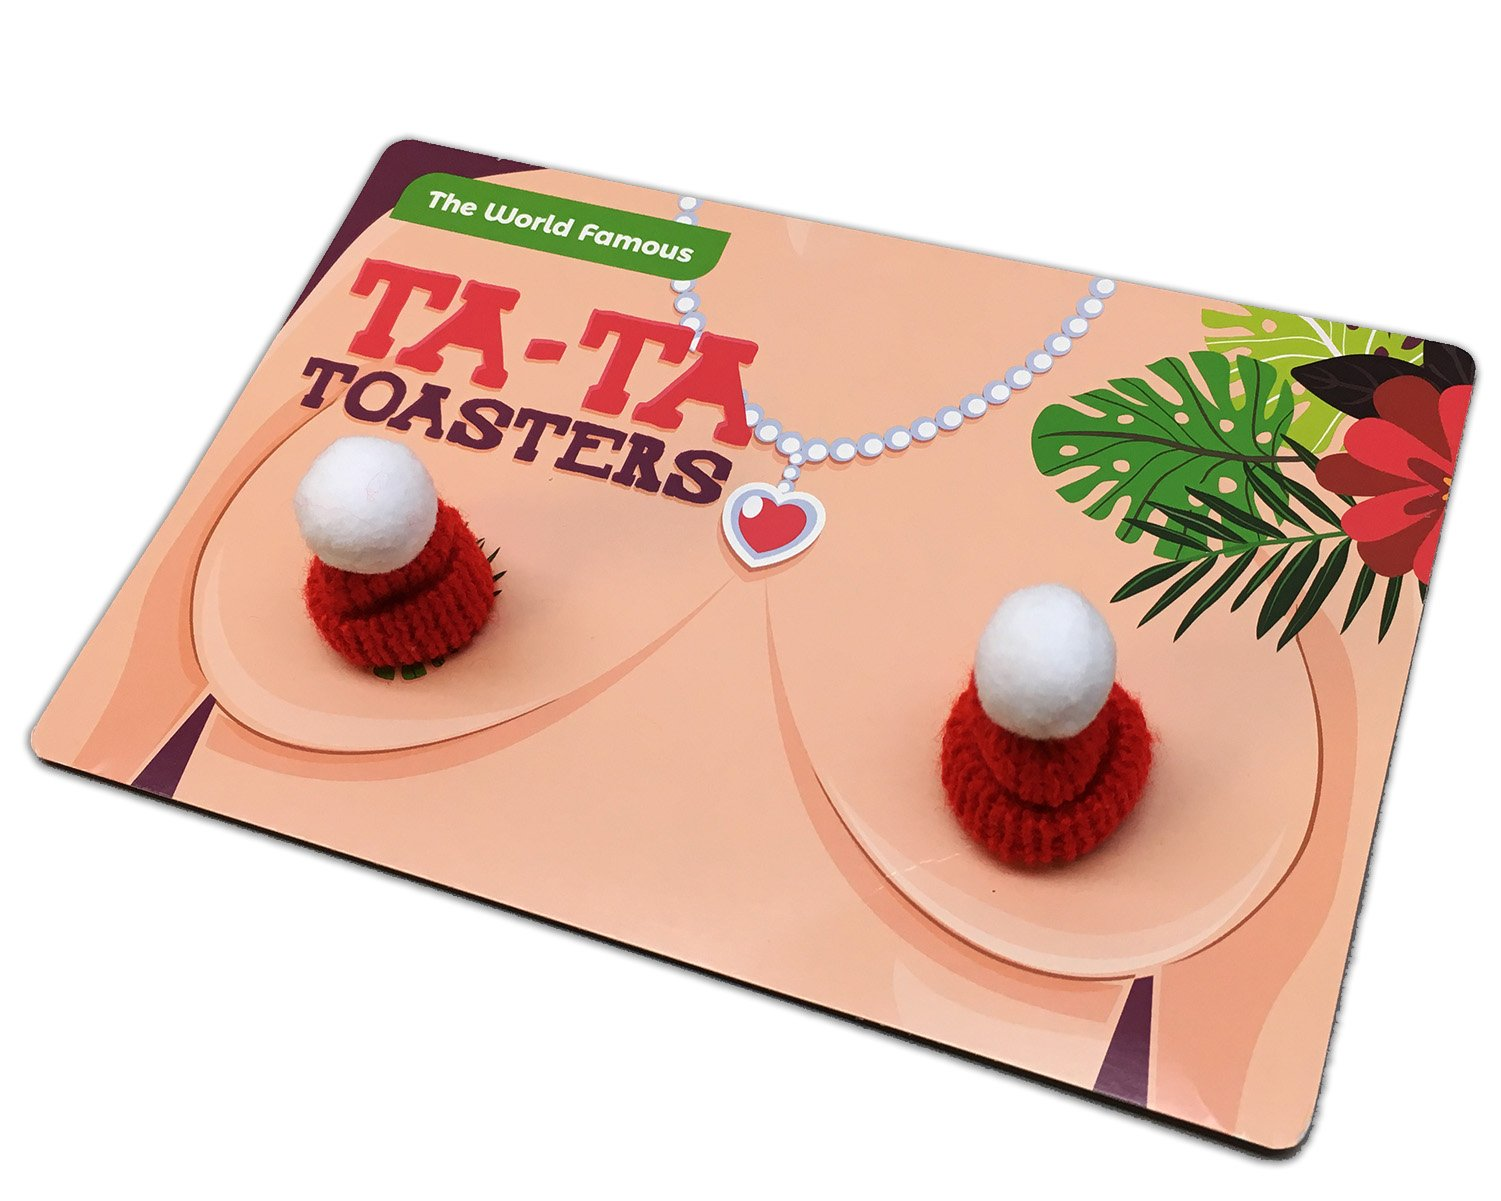 Ta-Ta Toasters - Funny Novelty Gift for Women Naughty Stocking Stuffers Gag Gifts for Girl Friends BFF Gifts for Ladies Funny White Elephant Idea Chest Warmers Hooter Heaters Tata Toasters by Gears Out